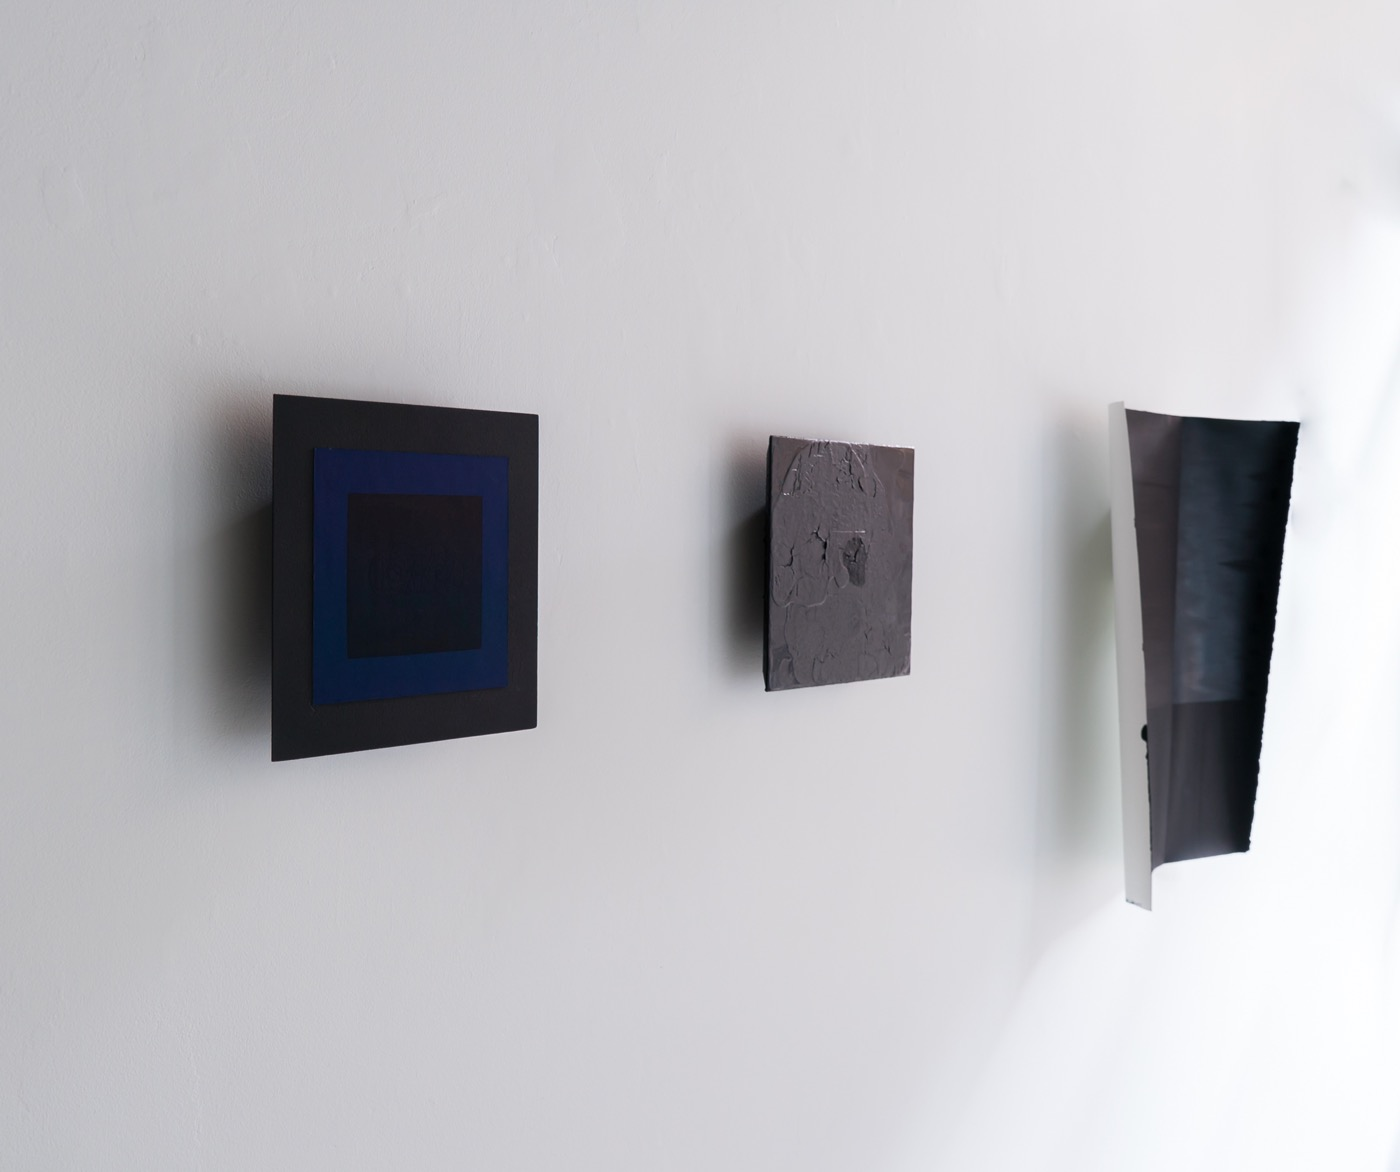 Randy Gibson: Rational Time (Installation View)